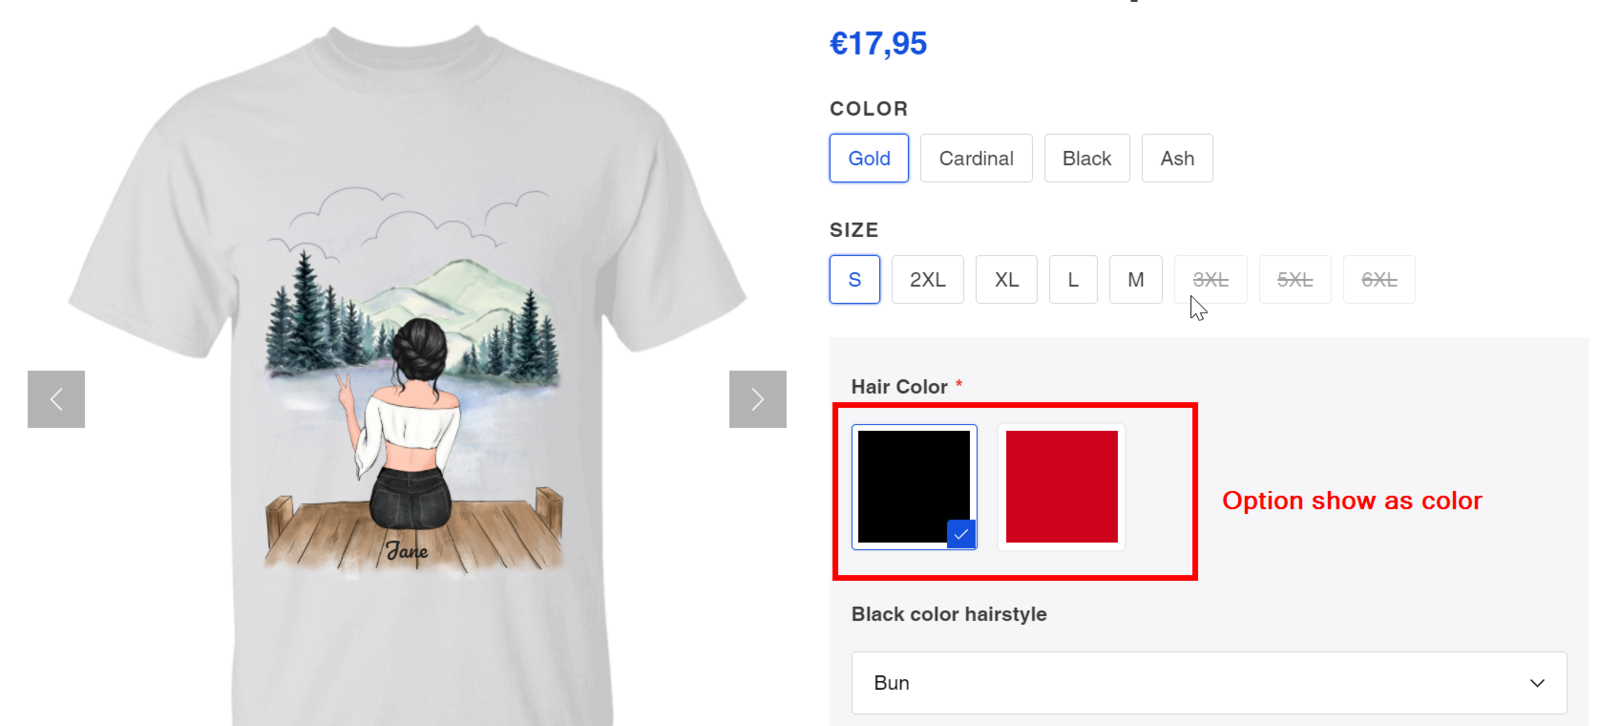 Option displayed as Color Swatches on storefront